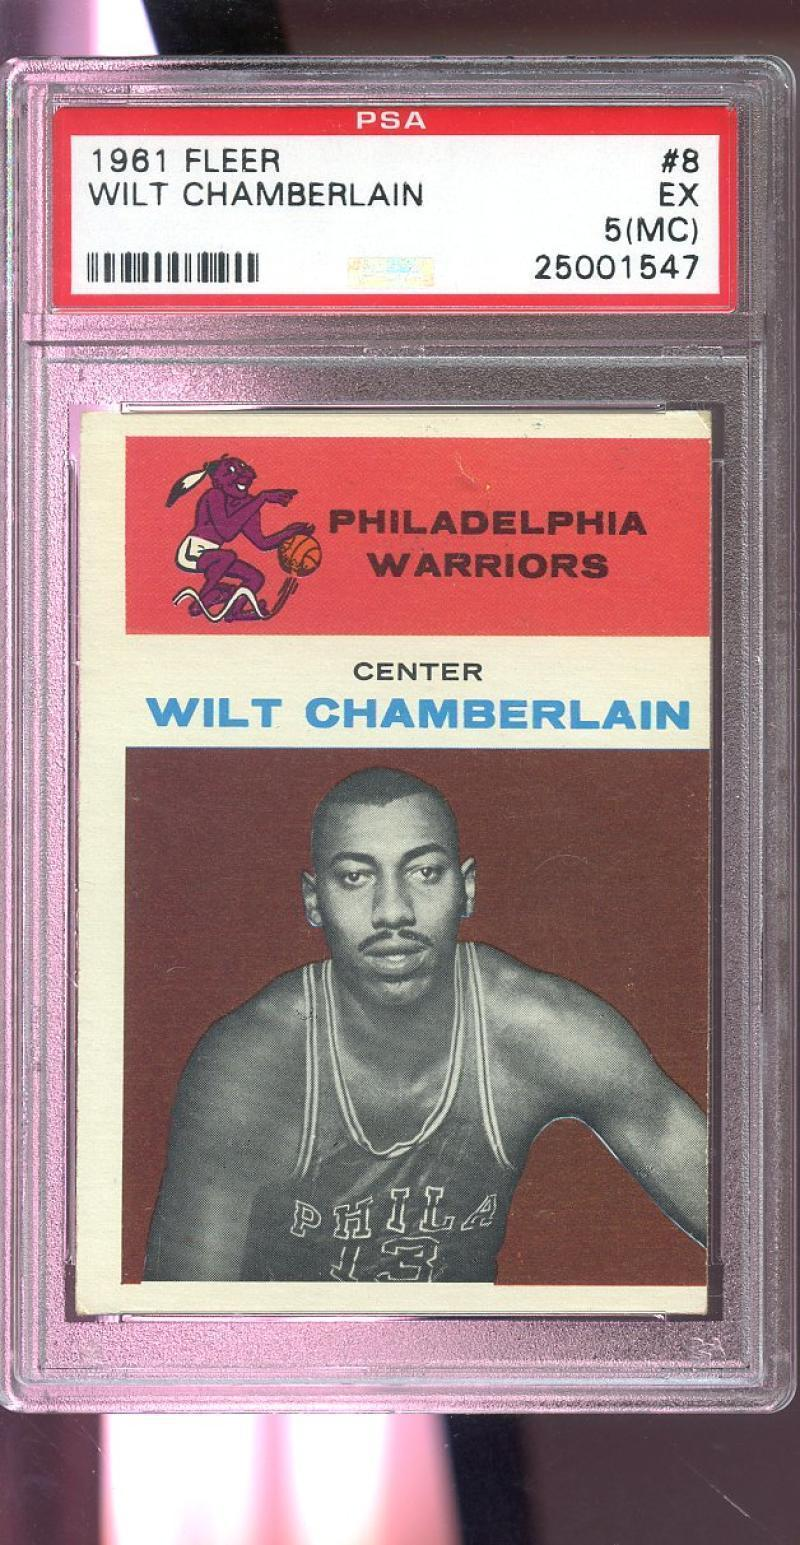 13 Most Valuable Basketball Trading Cards Stormfanclubcom